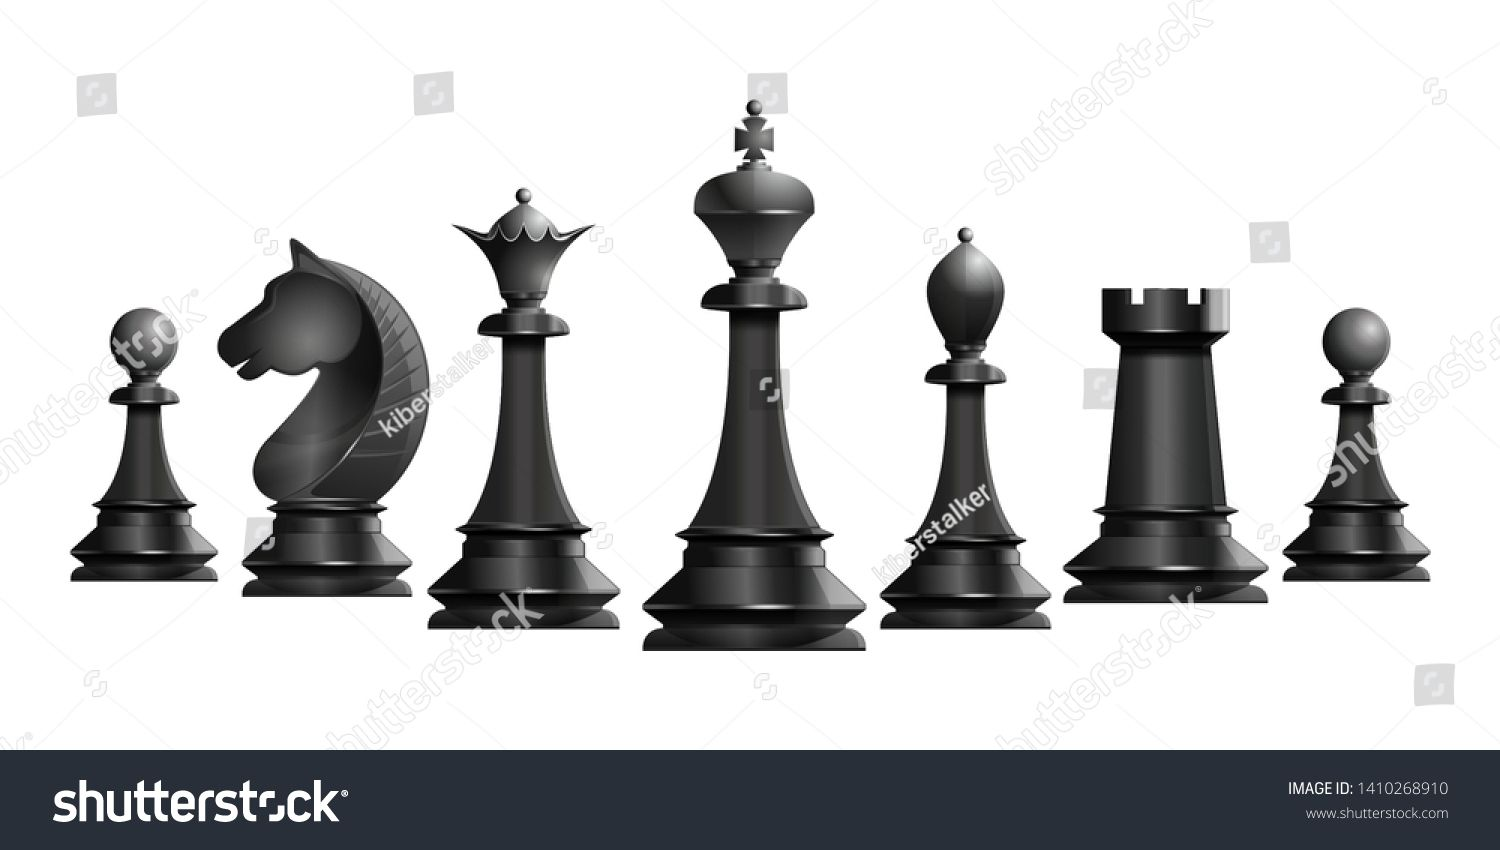 Set Of Black Chess Pieces Chess Piece Icons Board Game Vector Illustration Isolated On White Background White Background Graphic Illustration Chess Pieces